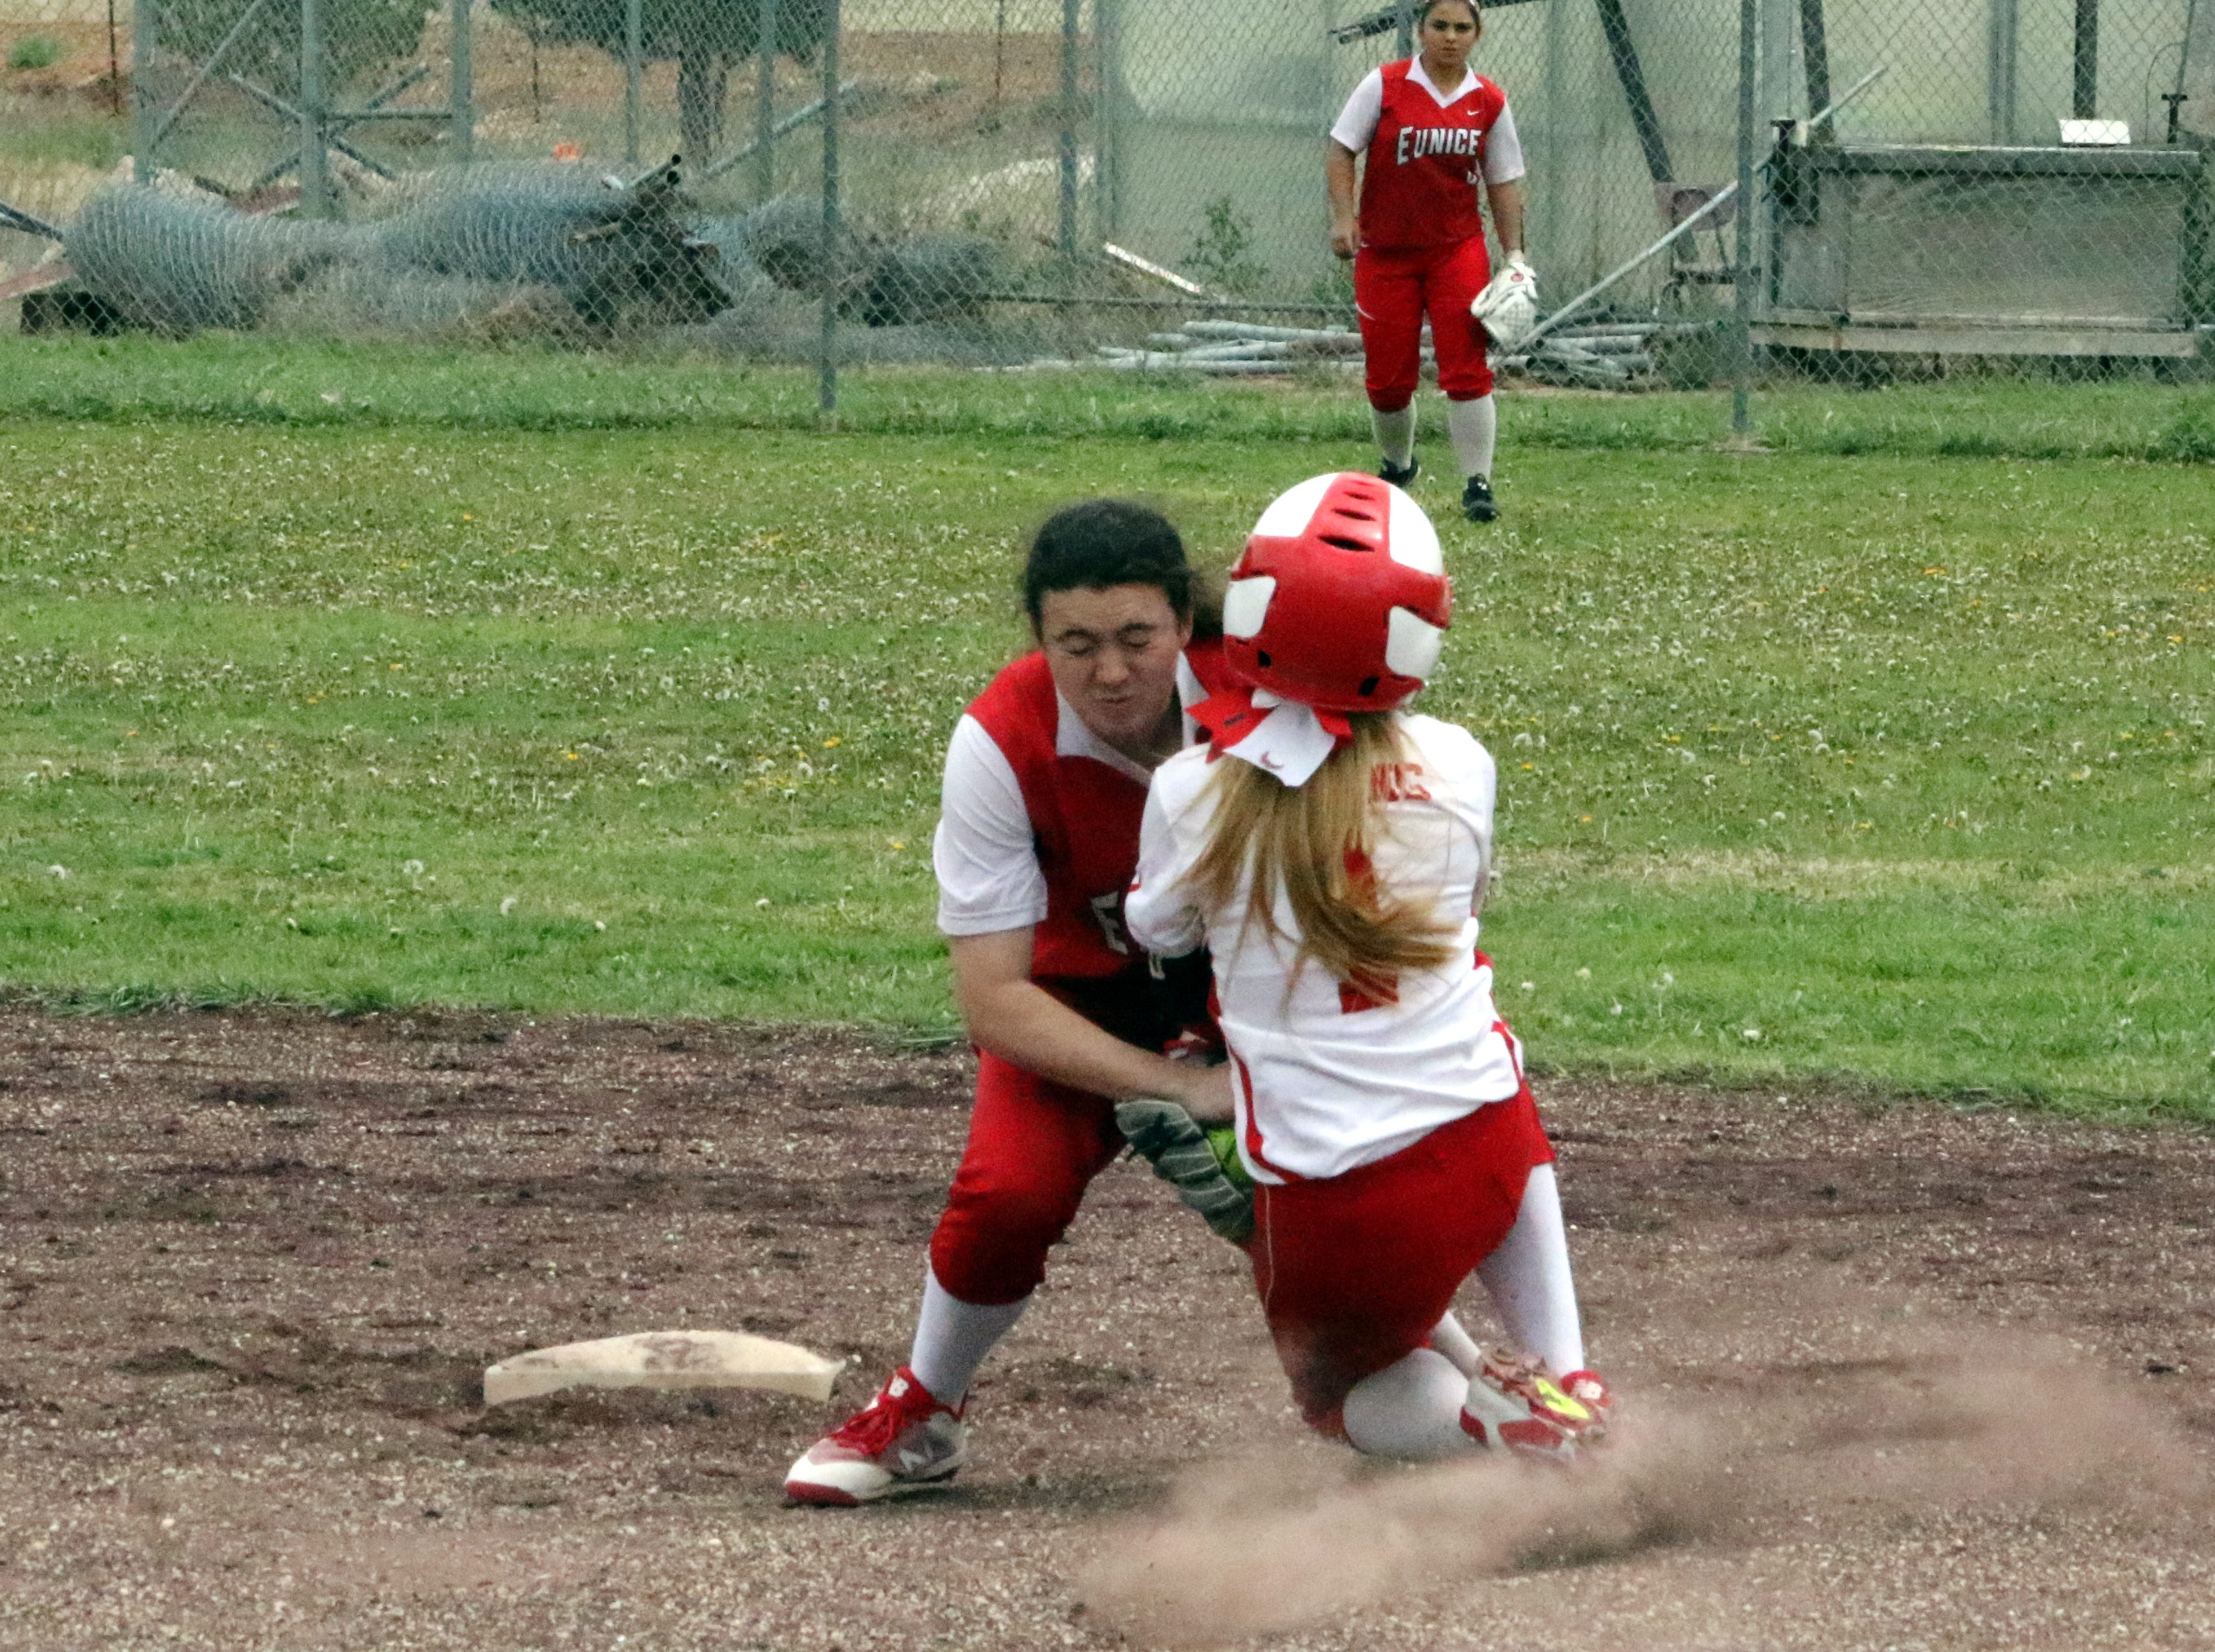 Tiana Rodriguez is tagged out by Eunice after she attempted to steal second base during Saturday's doubleheader.